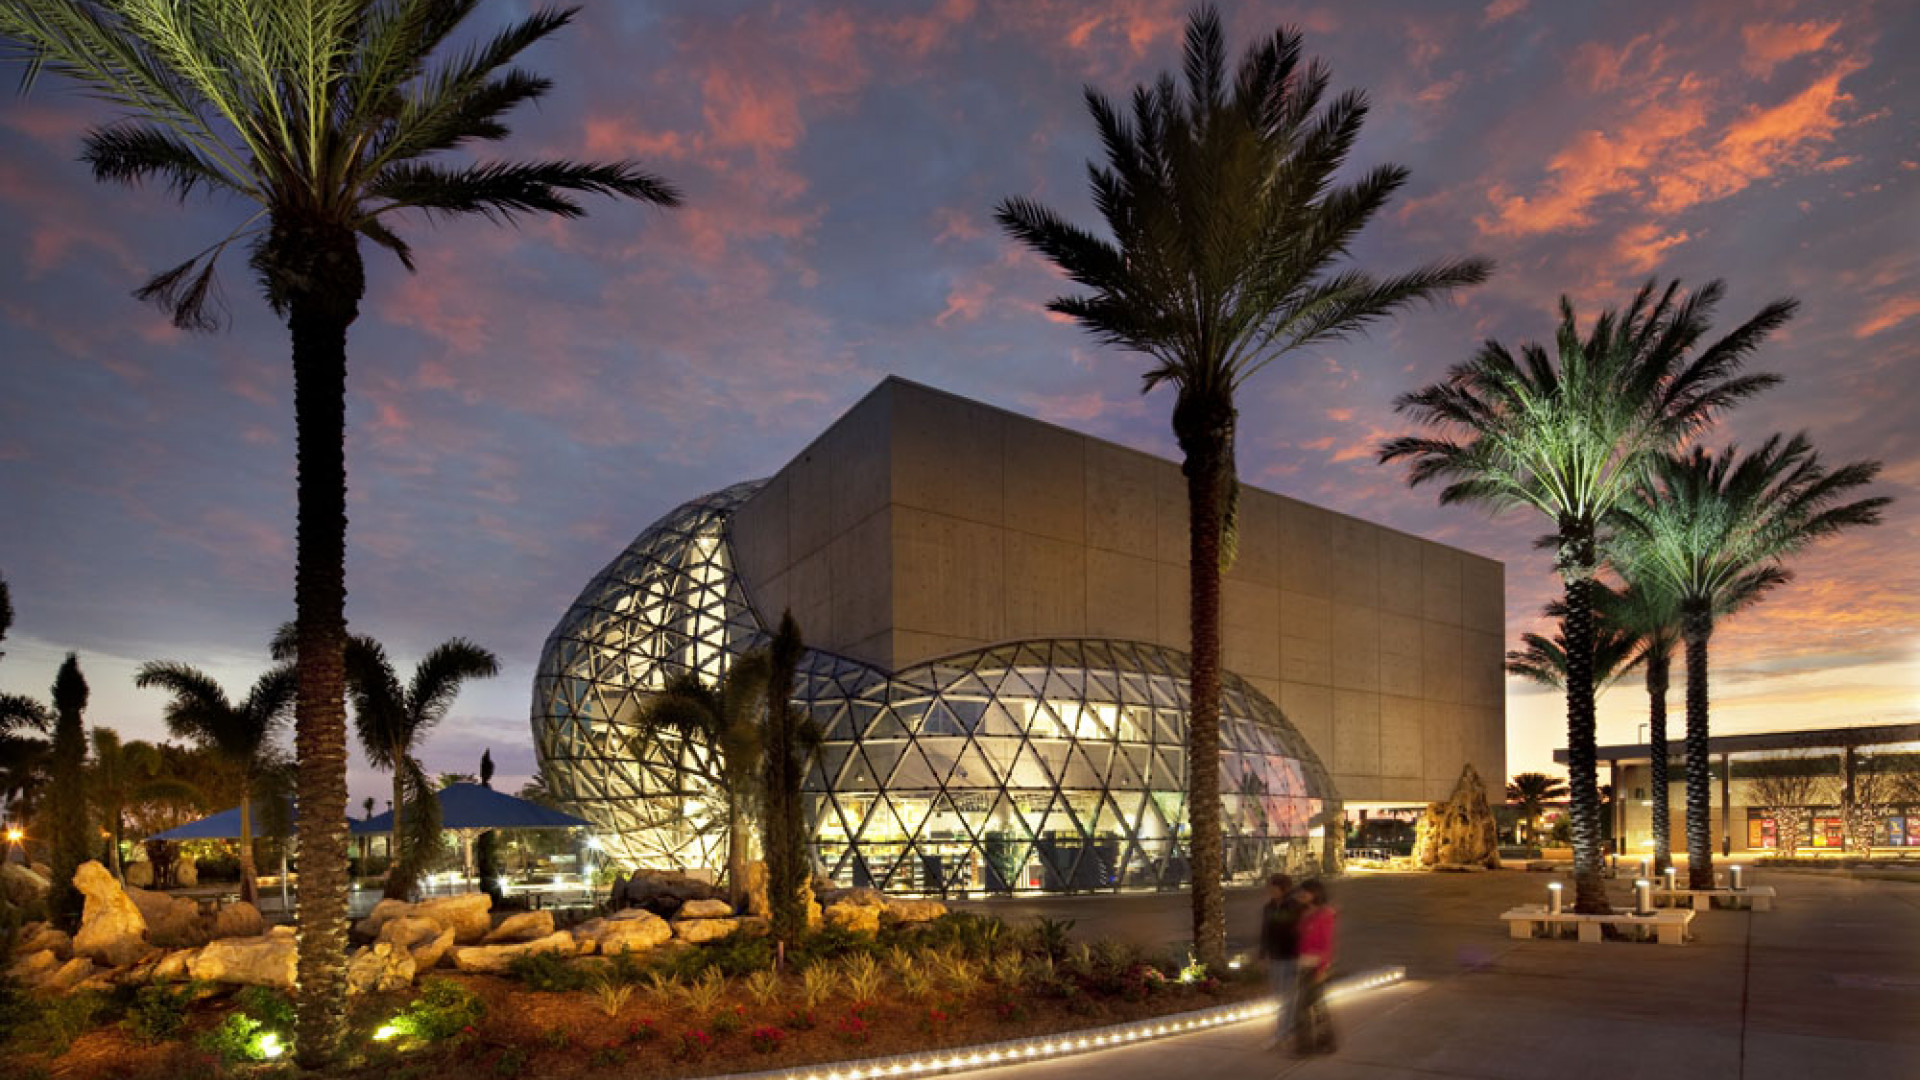 Dali Museum St Pete/Clearwater Florida